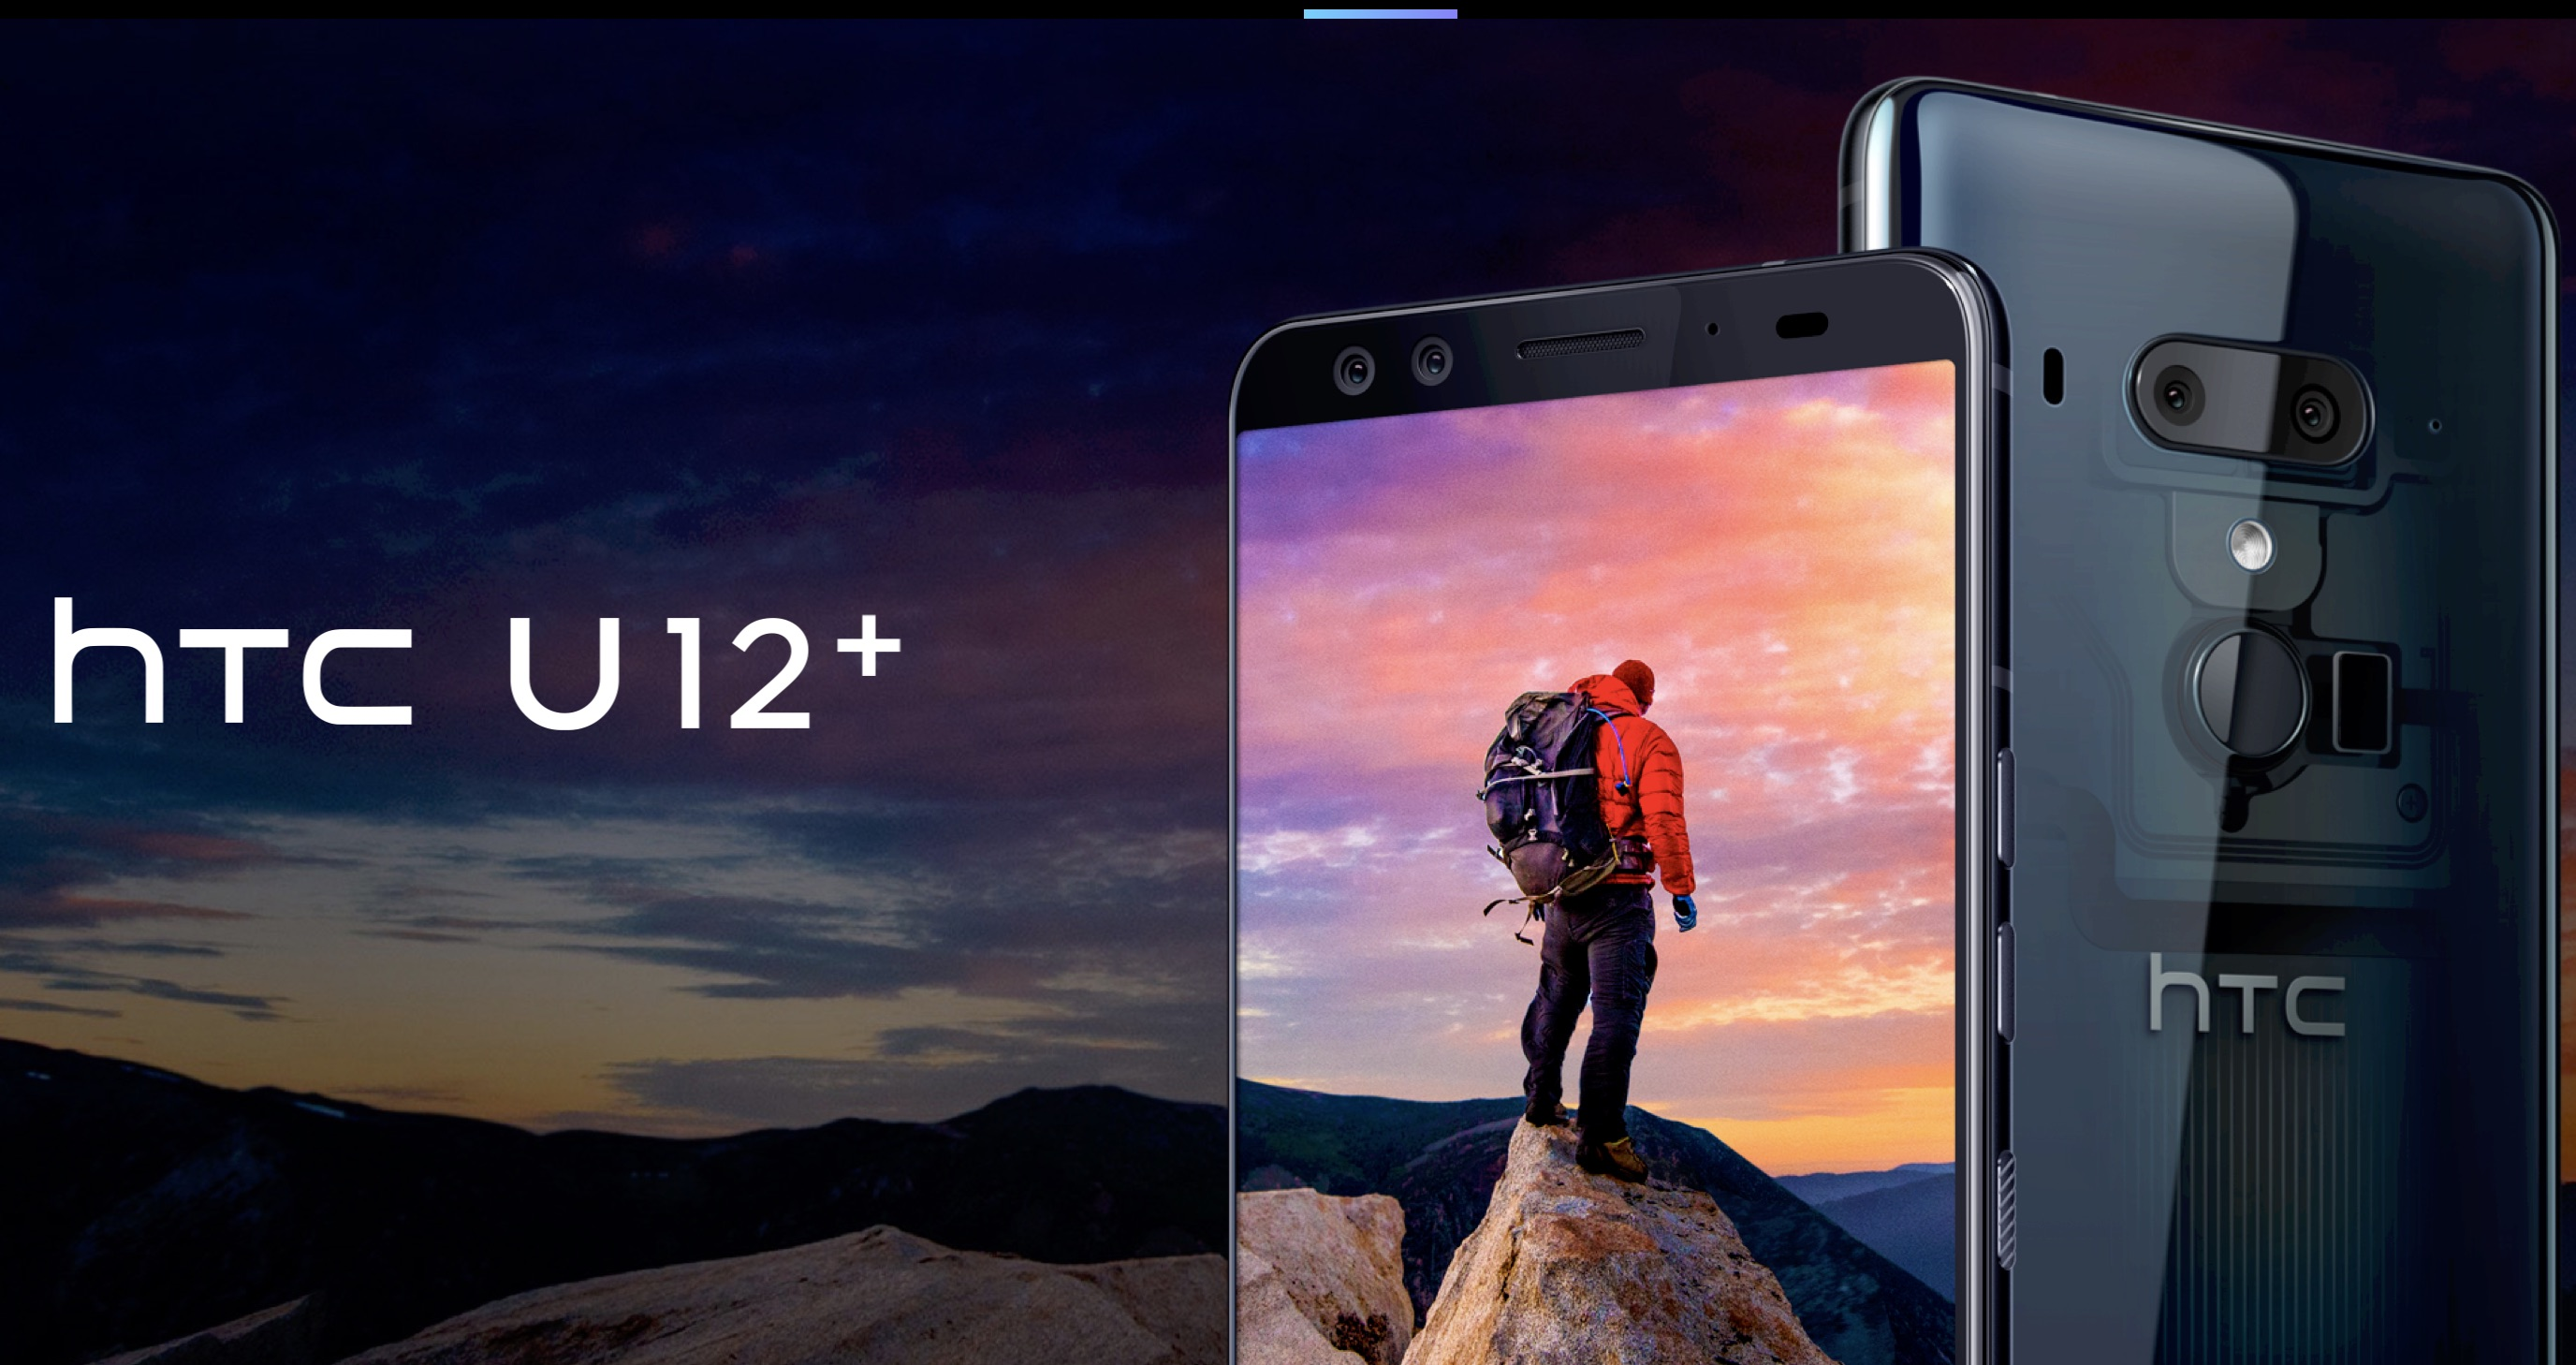 HTC U12+ Launches with Dual Rear & Front Cameras, 6GB RAM